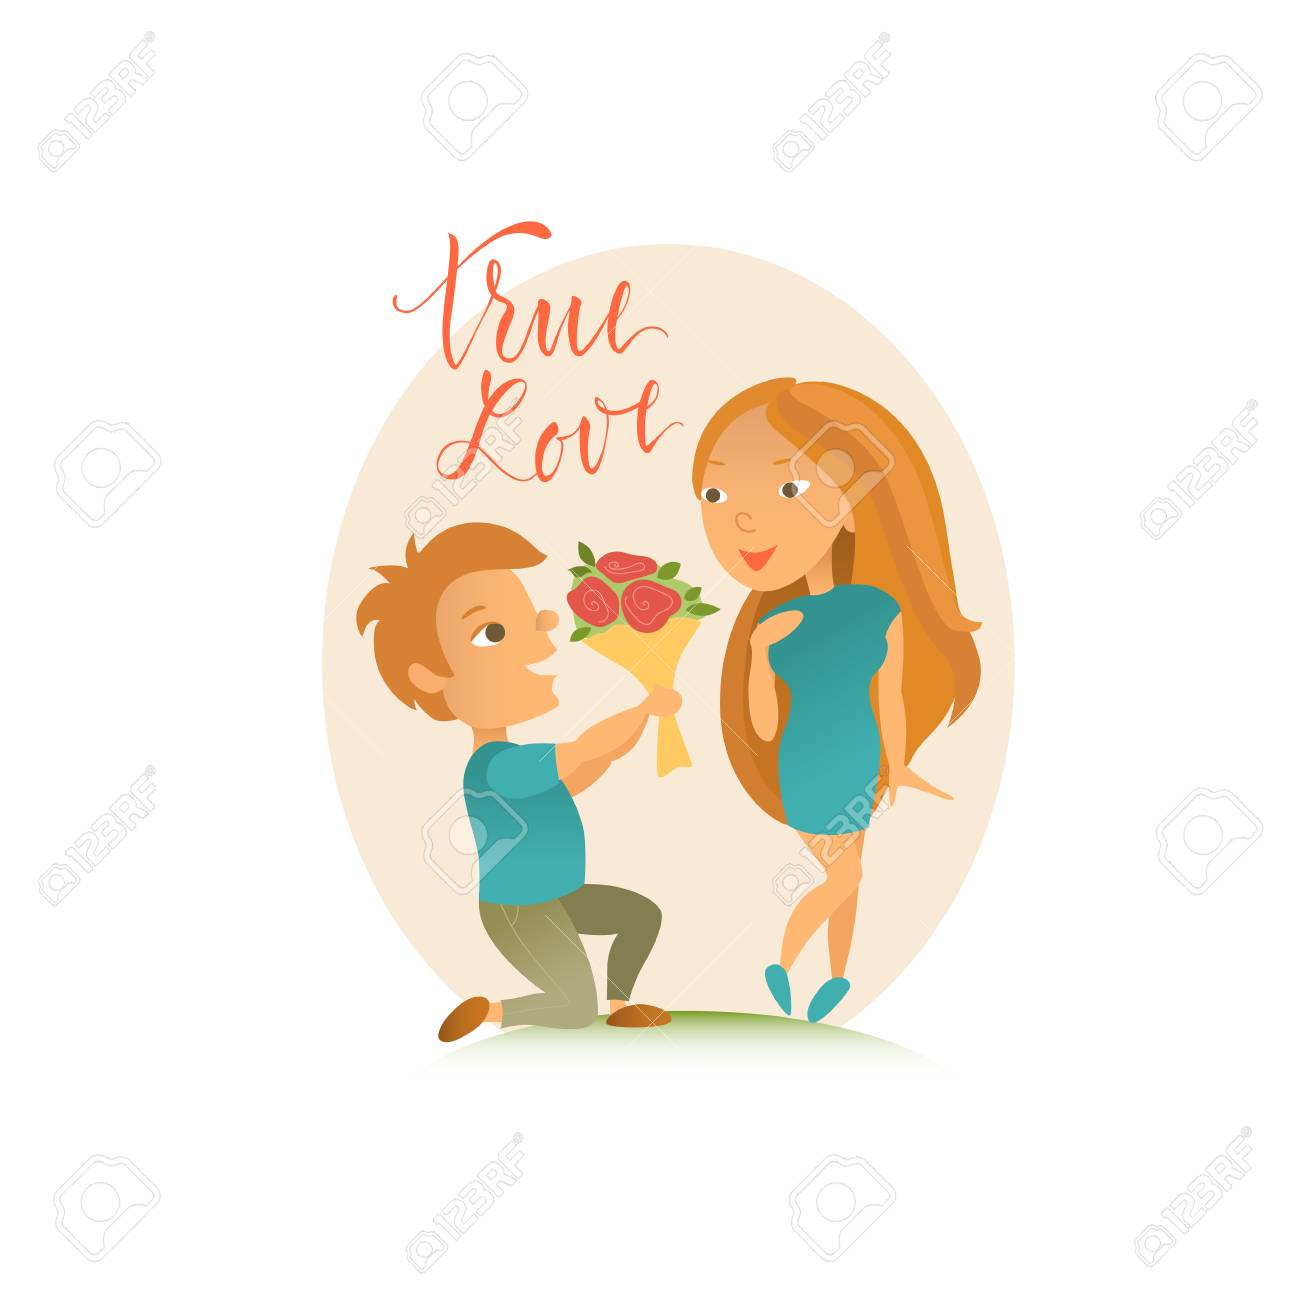 Vector illustration valentines day greeting card cartoon vector illustration valentines day greeting card cartoon characters lovers man and woman kristyandbryce Gallery